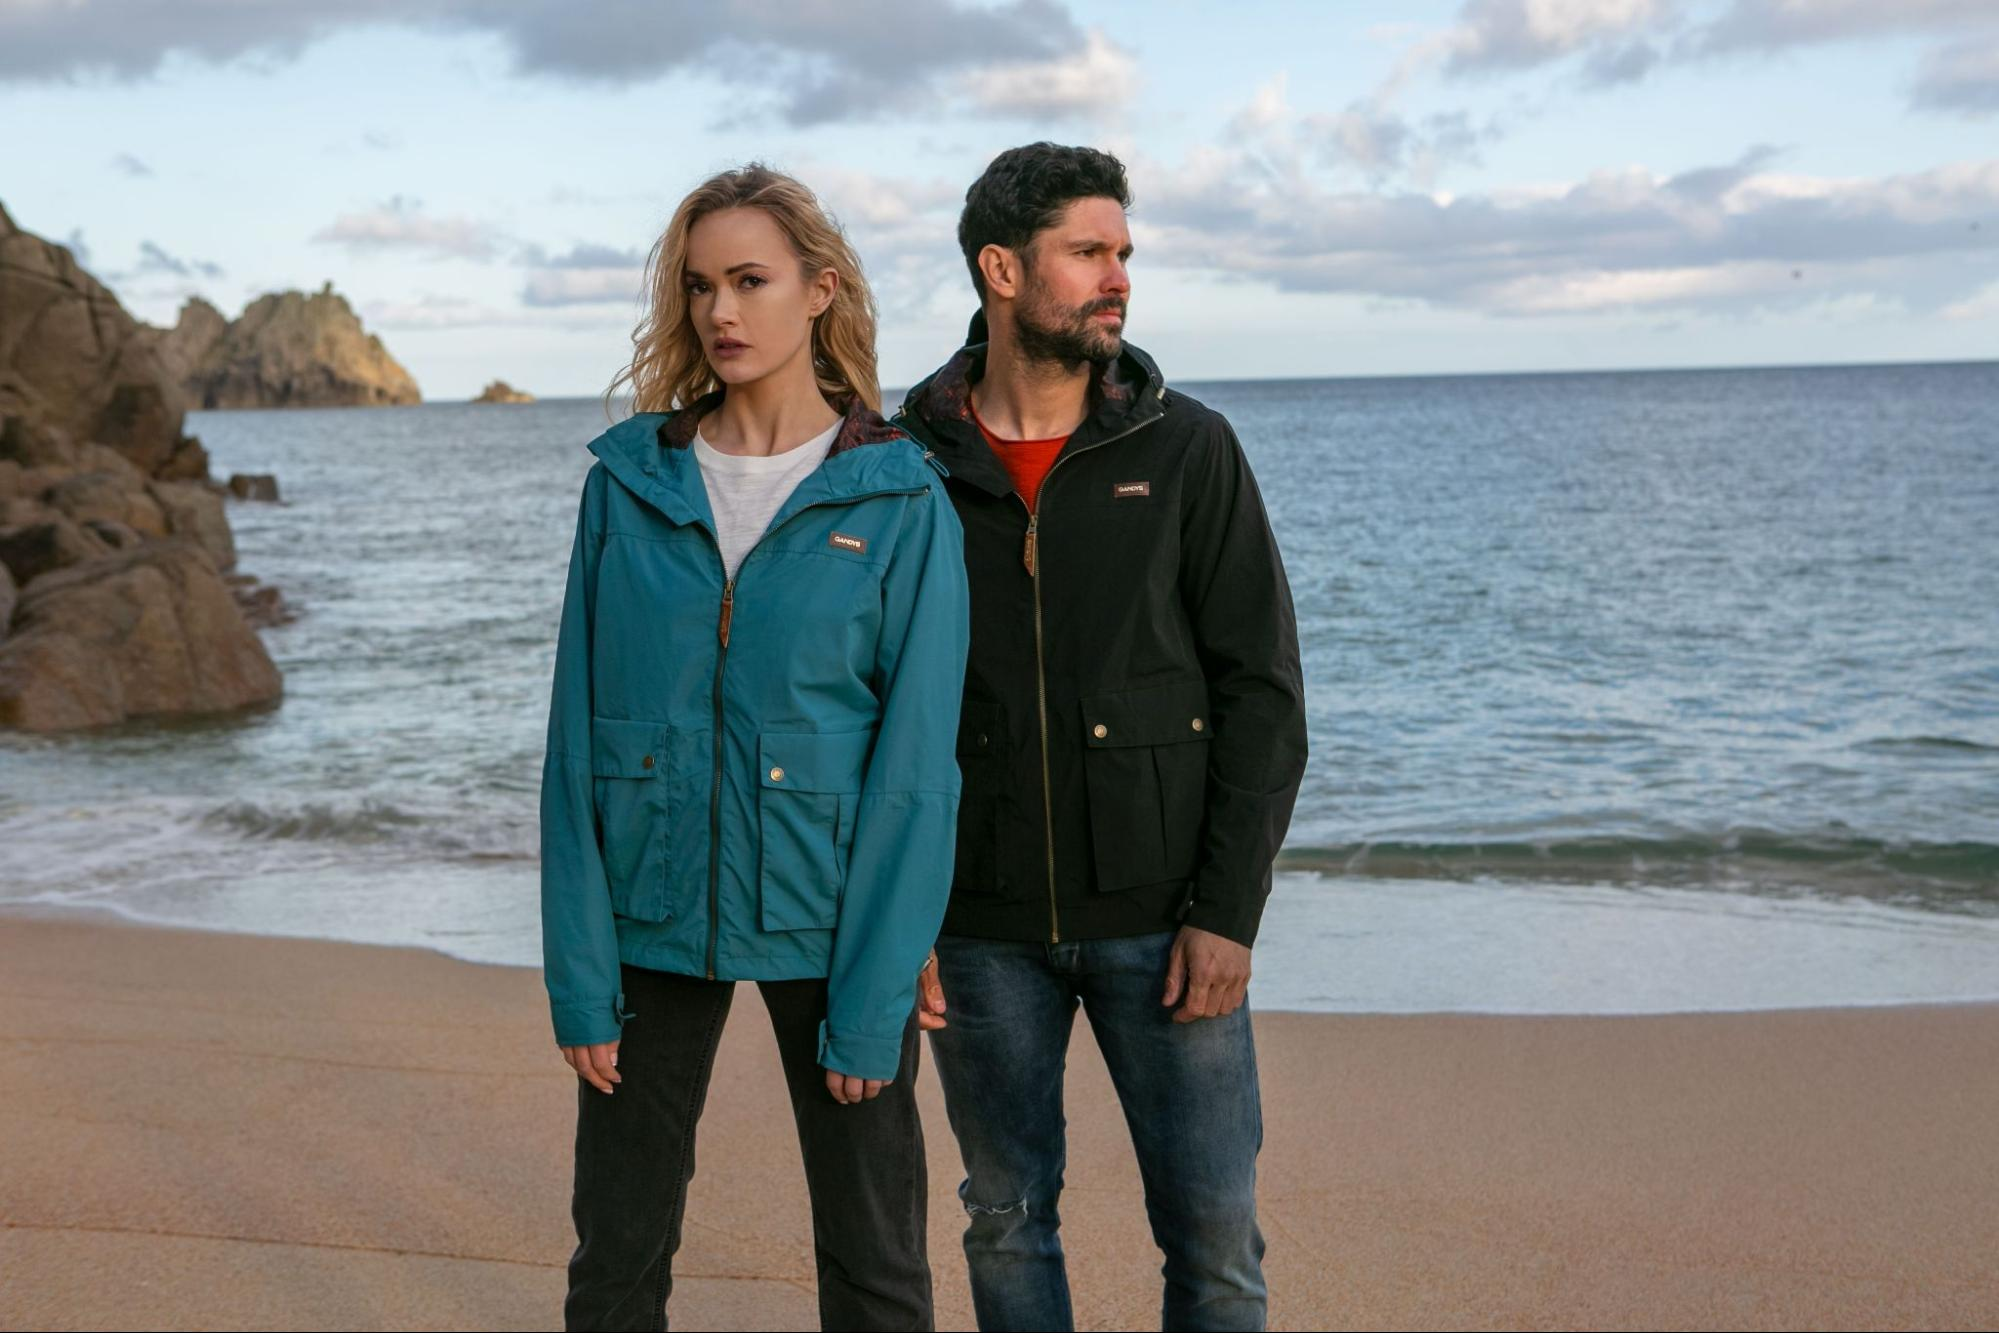 A pair of models in Gandys clothing on a beach setting backdropped by mountains.